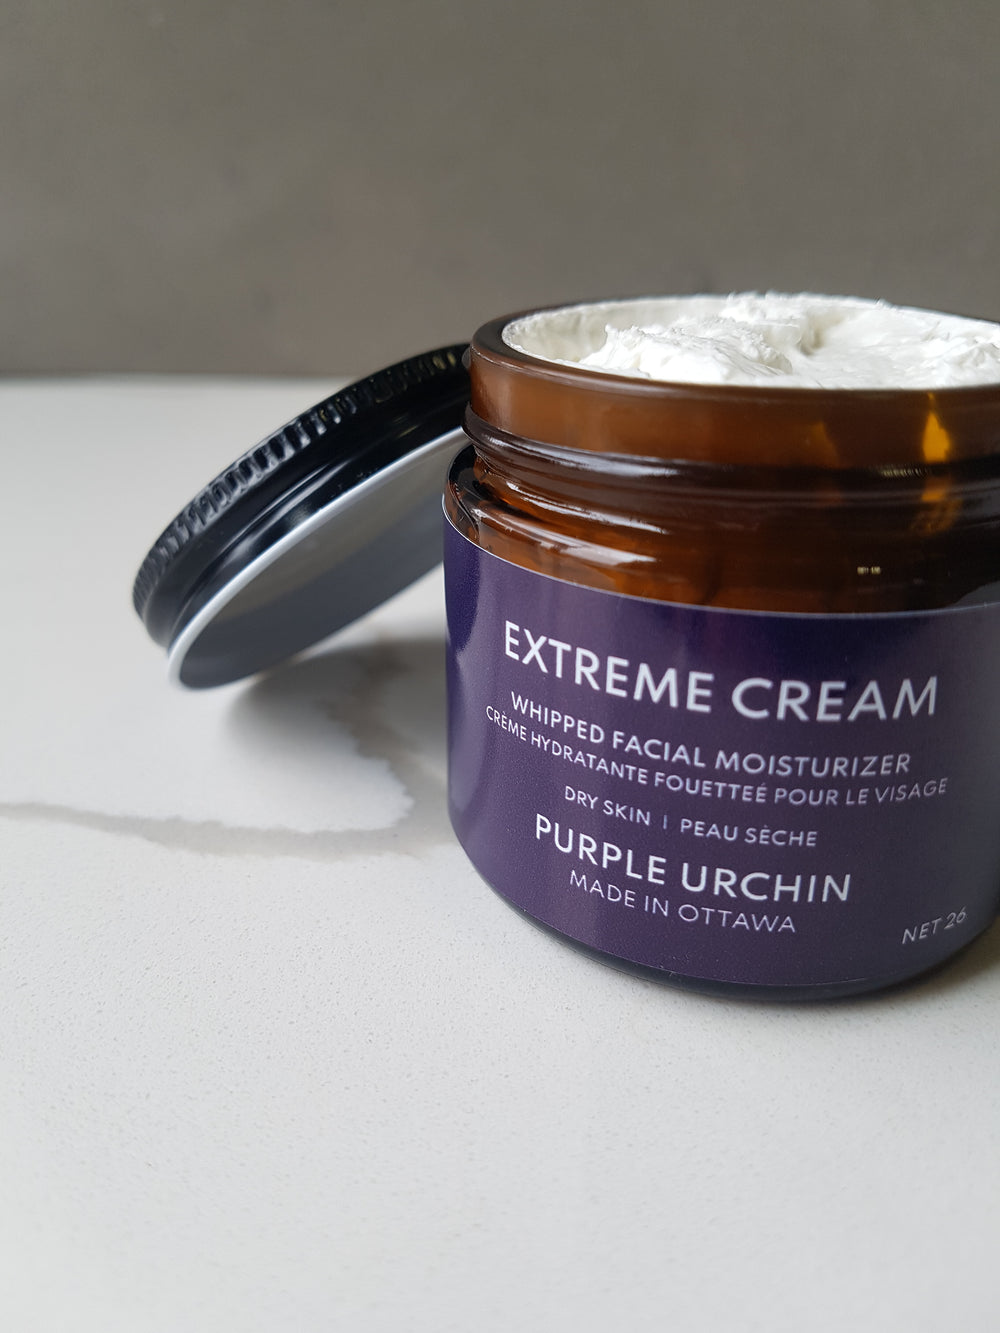 Limited Edition Extreme Cream Facial Moisturizer